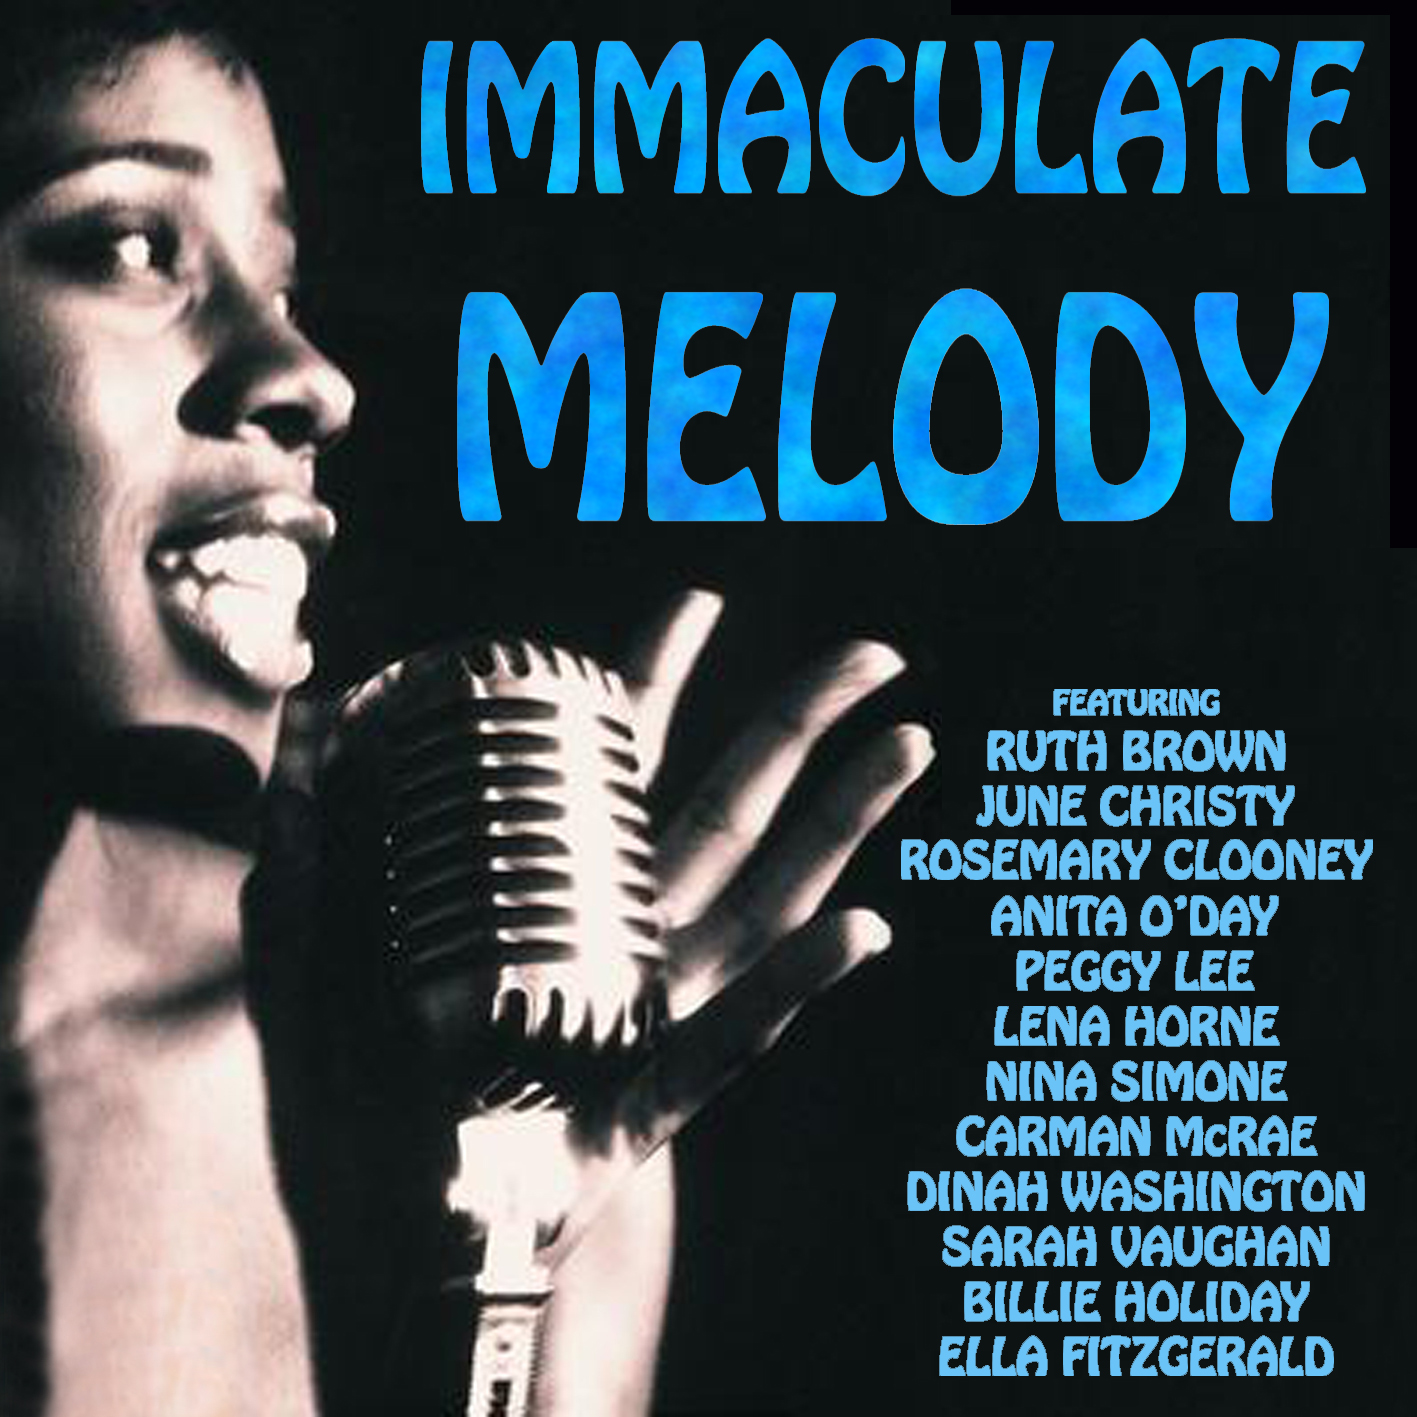 IMMACULATE MELODY